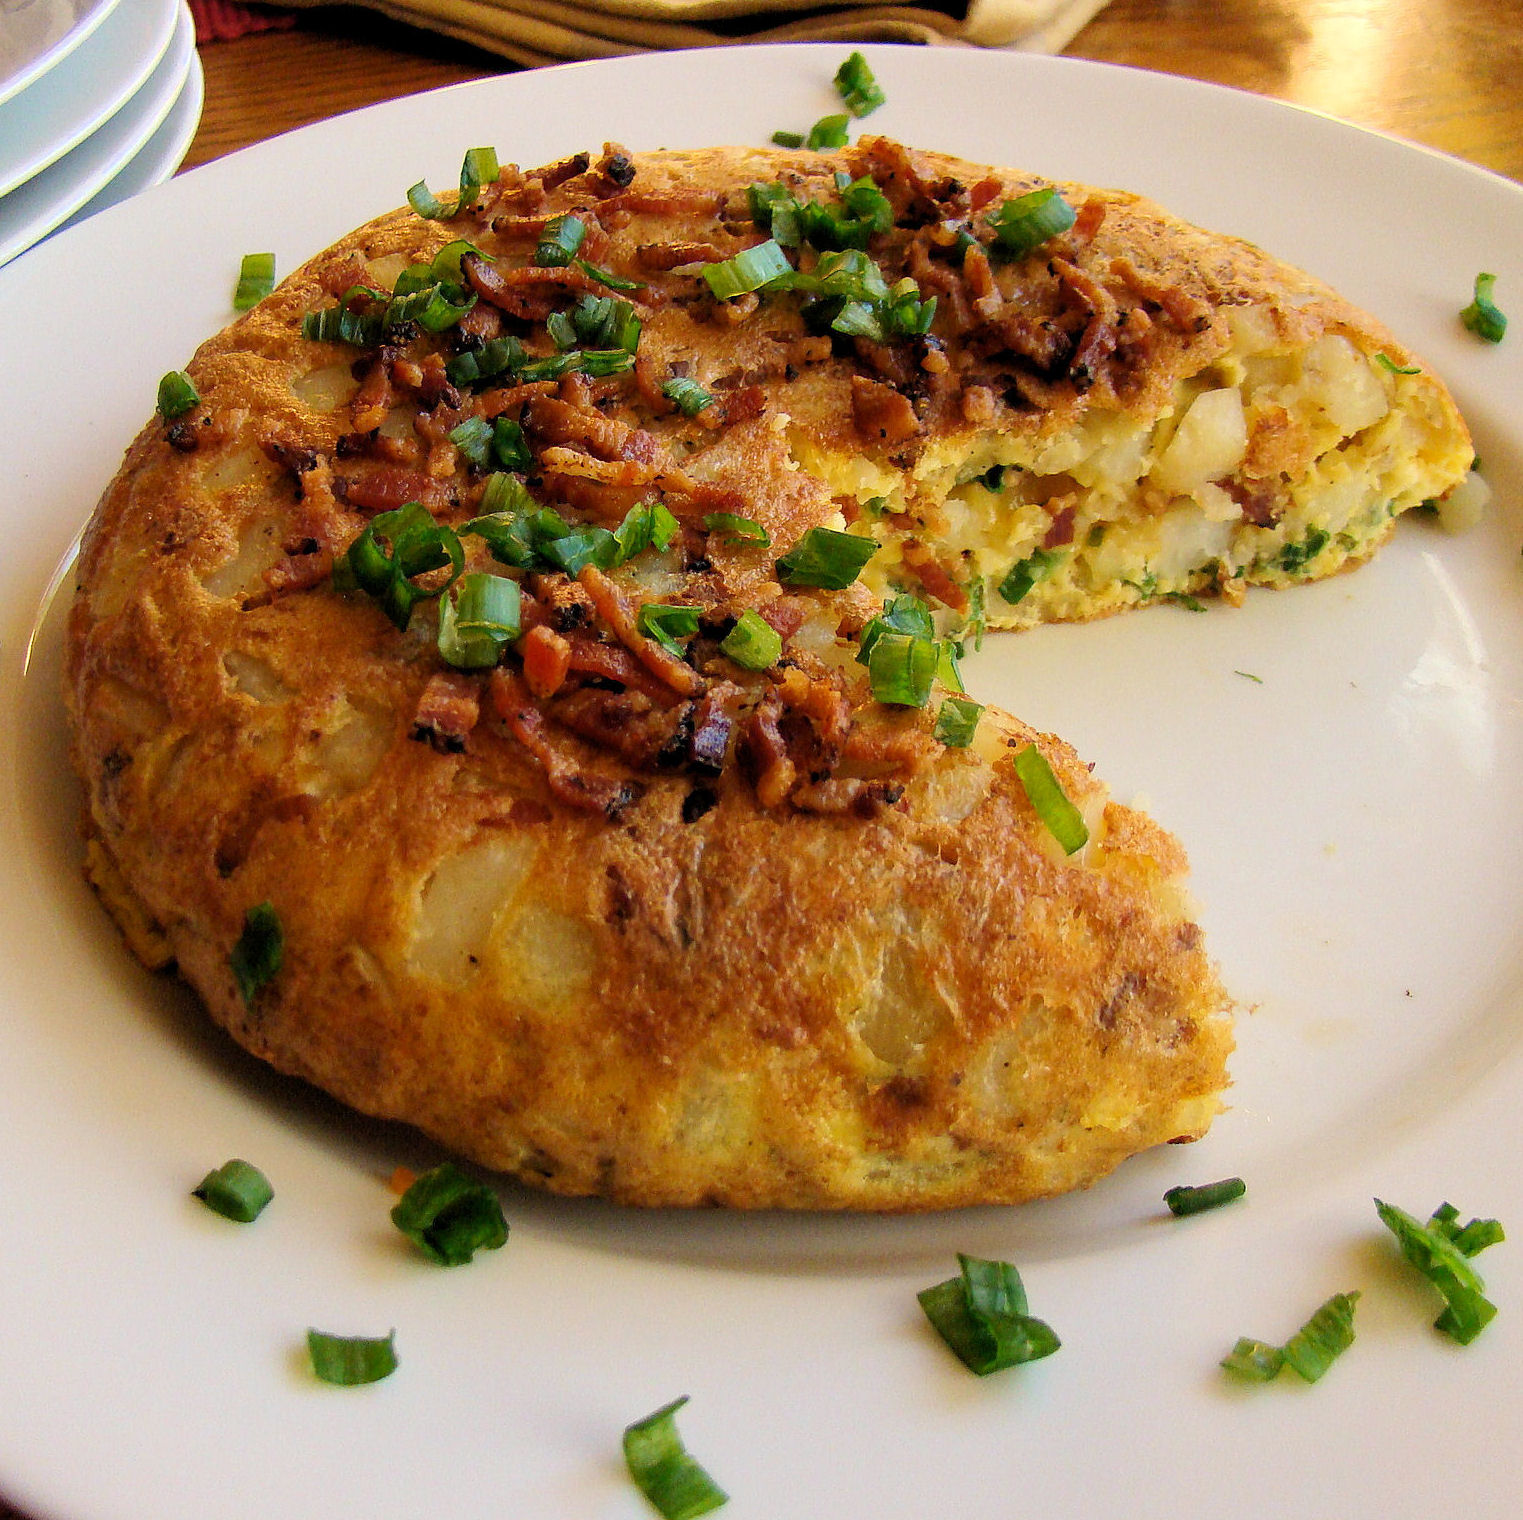 ... Roasted Potatoes, Bacon, Cheddar Cheese and Green Onions Frittata